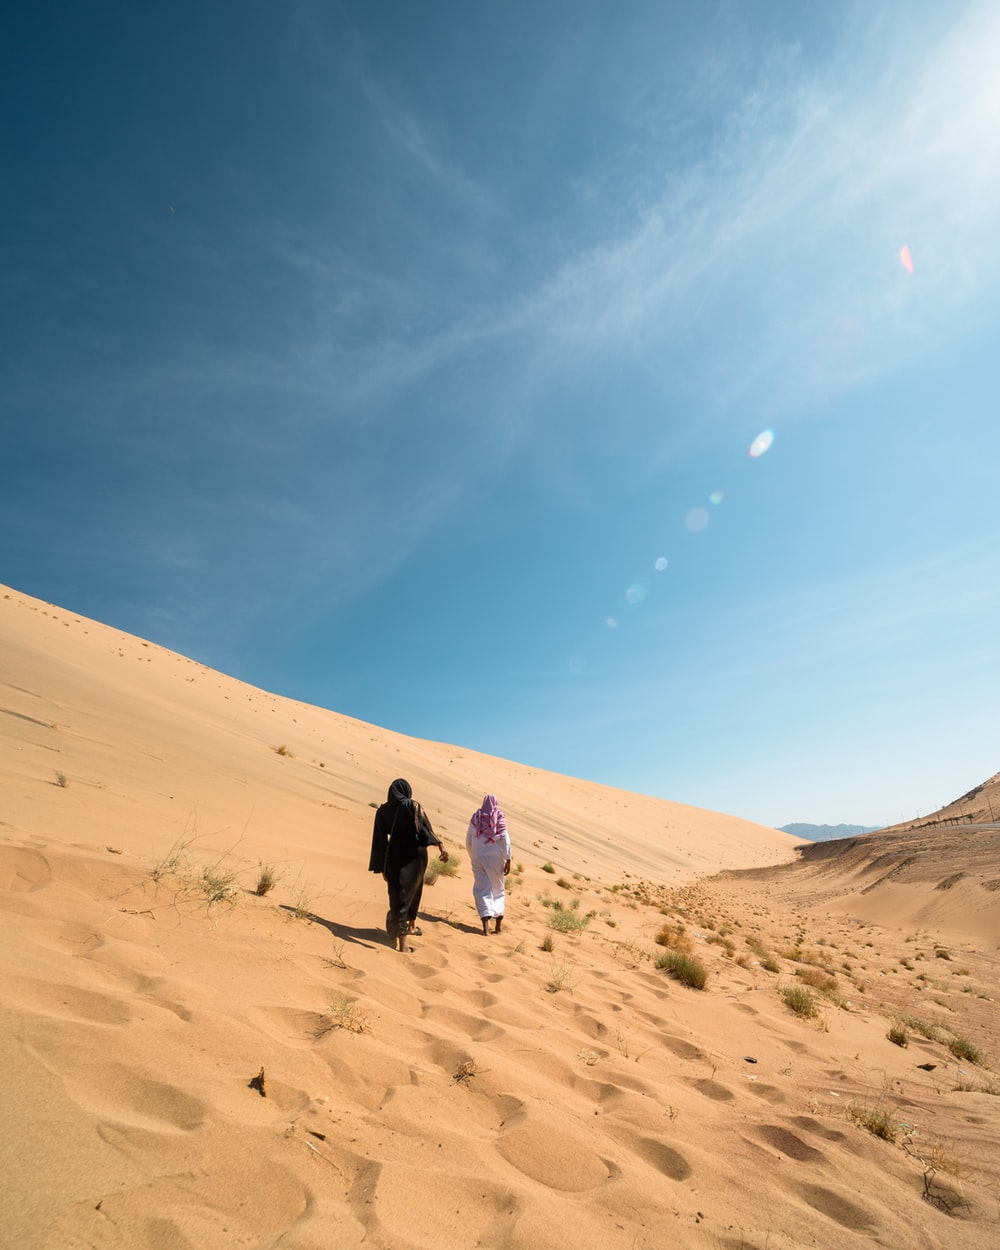 two people walking on desert under blue and white sky